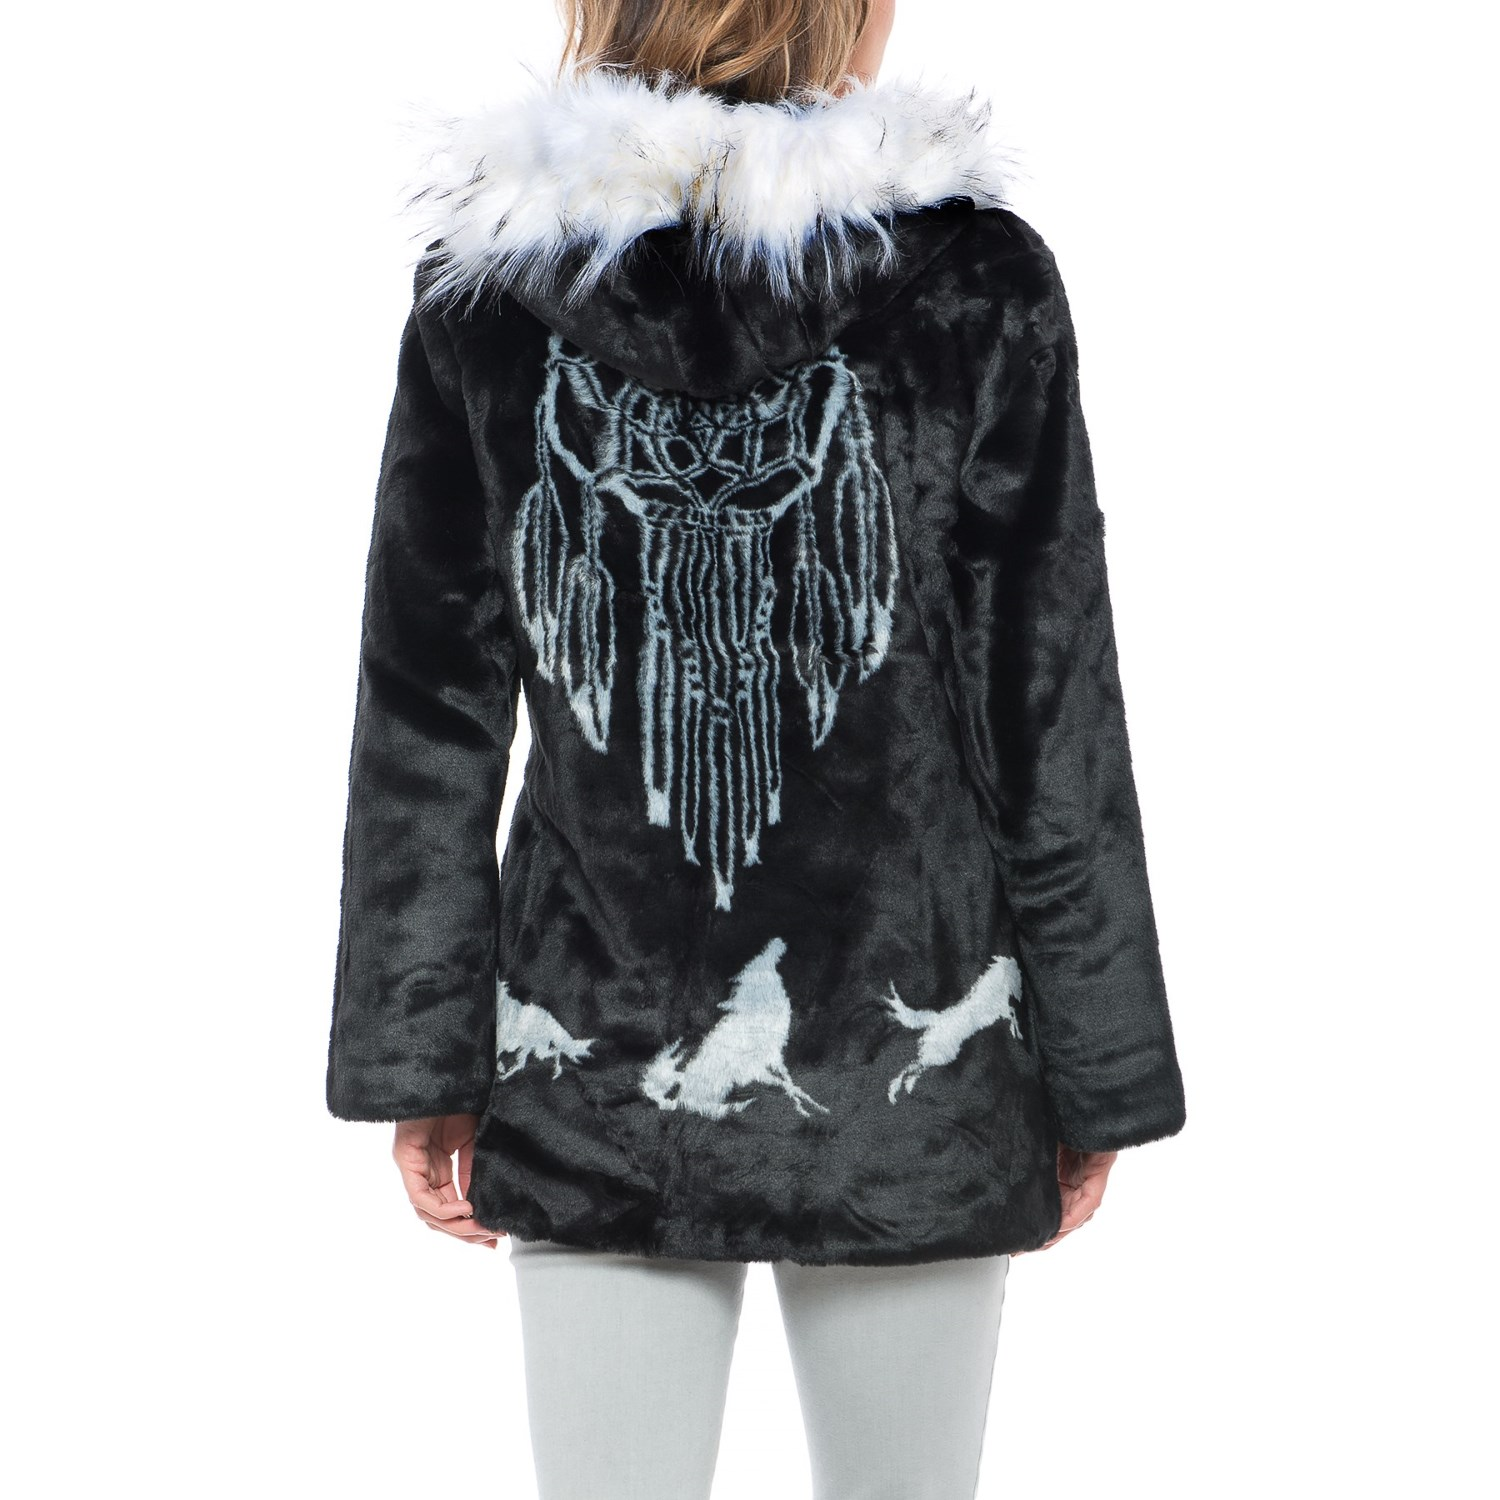 Black Mountain Faux-Fur Hooded Jacket (For Women) - Save 47%